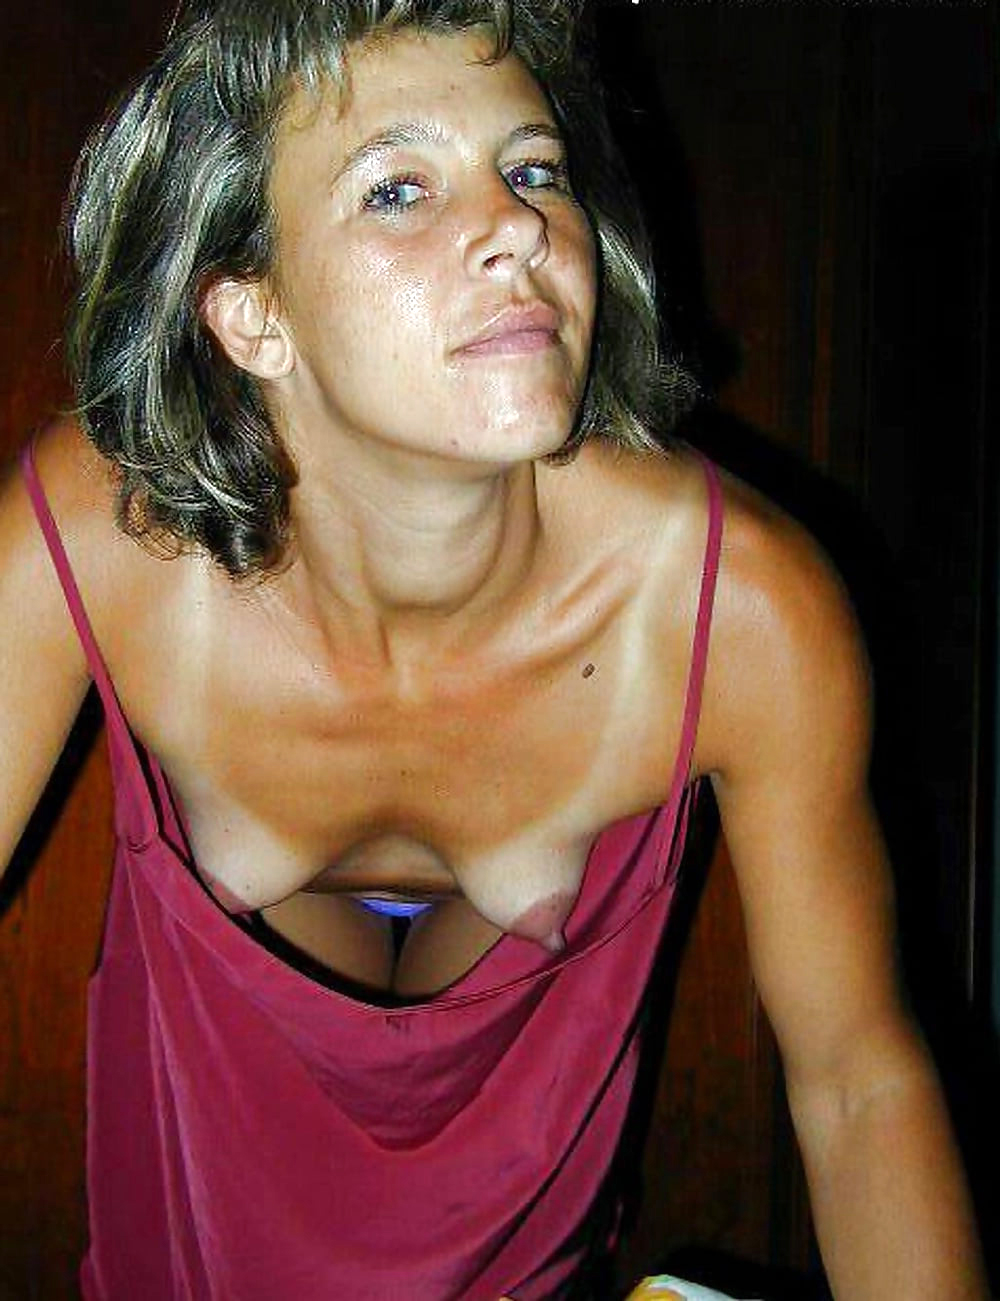 join told all amateur milf chubby rides on really. And